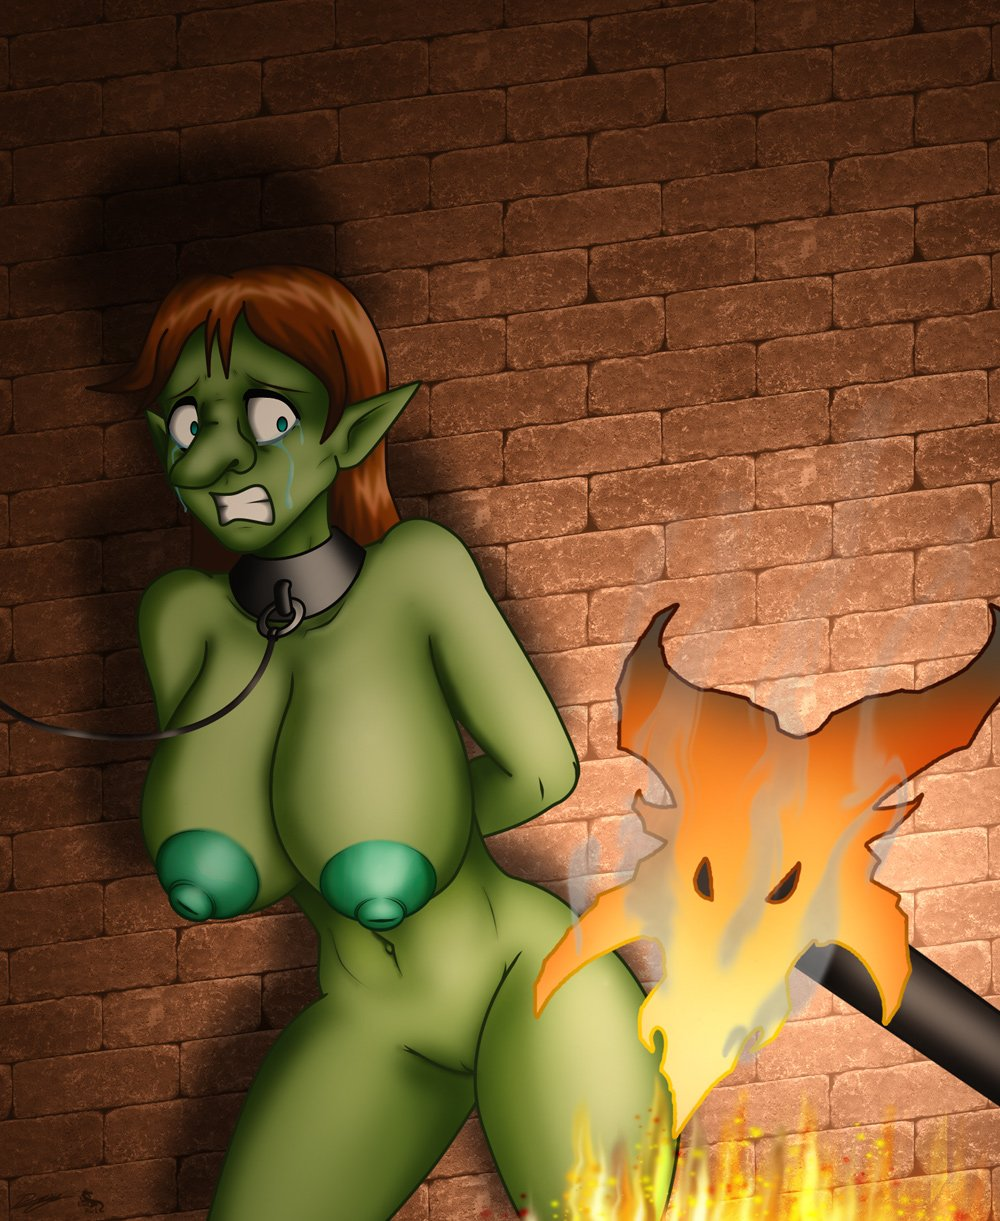 Nude sexsy 3d heros cartoon pictures